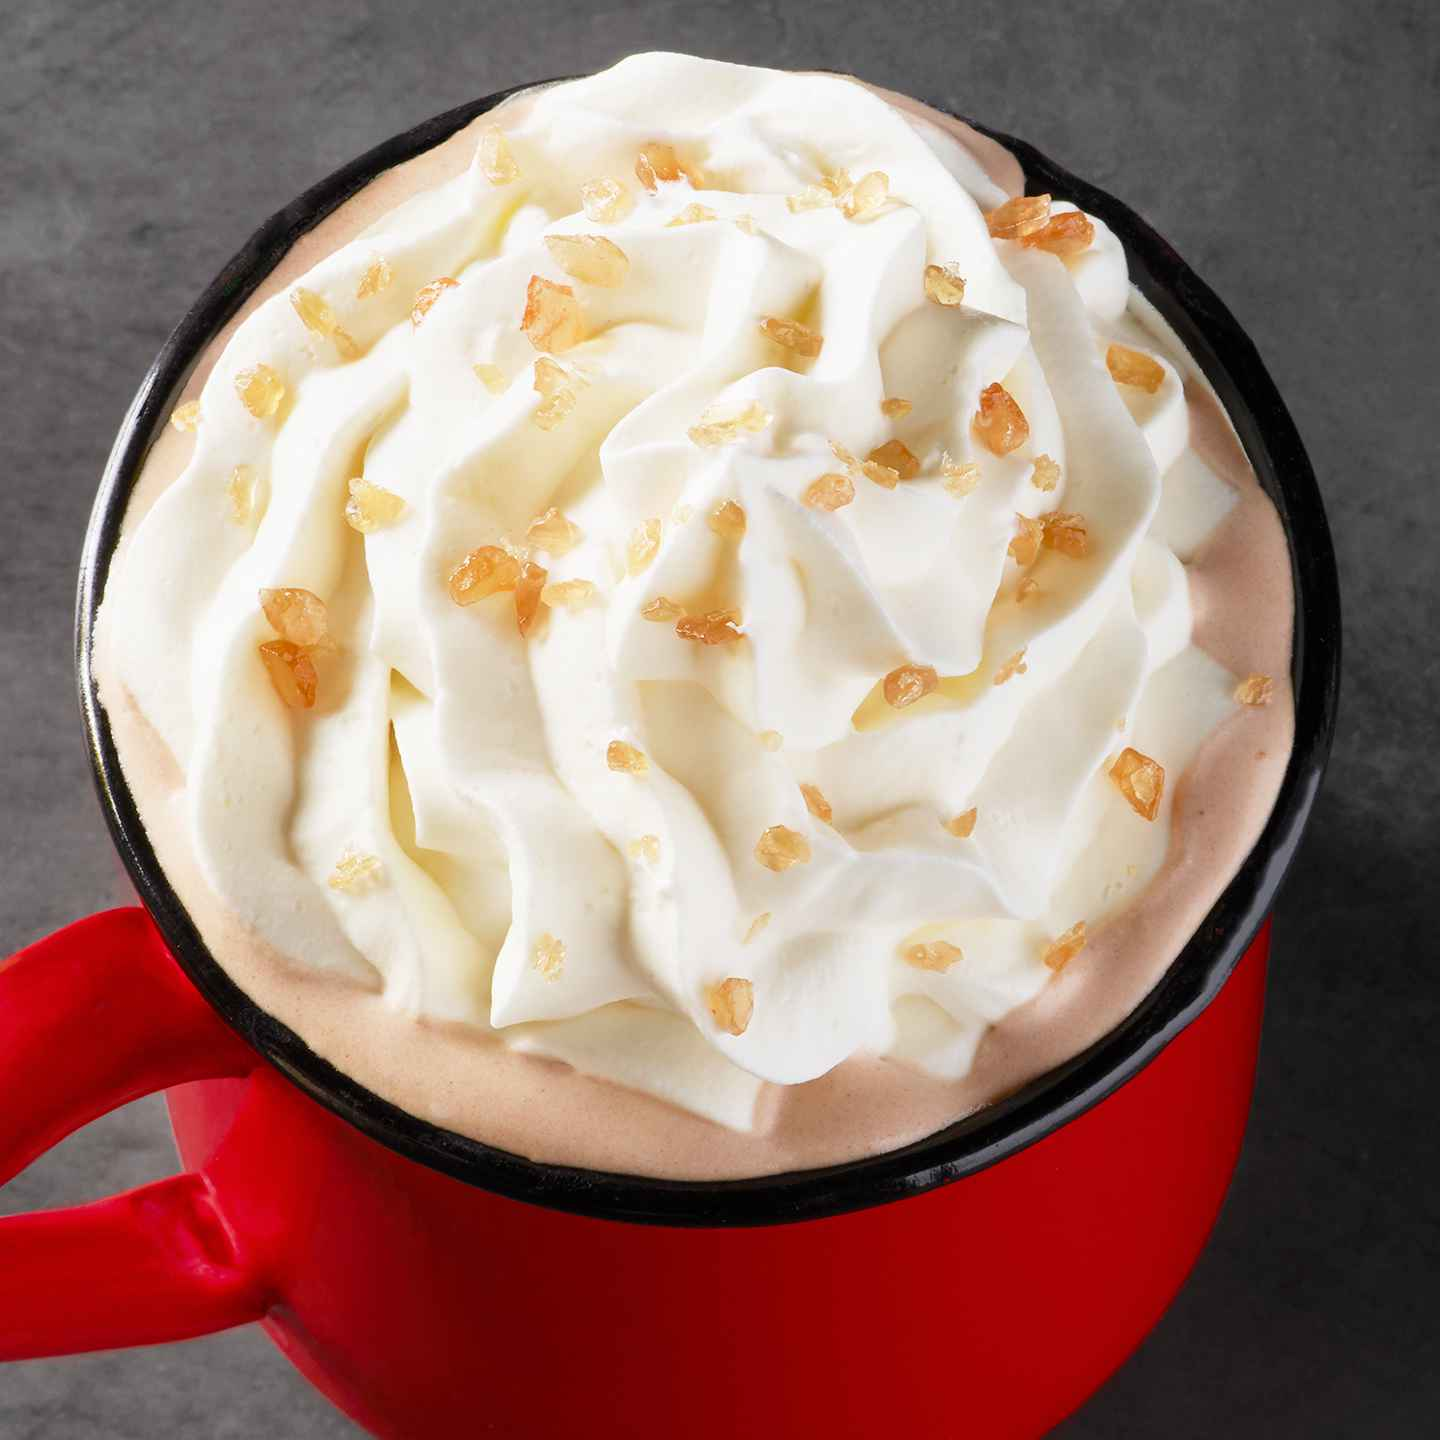 Starbucks' Toffee Almondmilk Hot Chocolate Is a Nutty, Non-Dairy Treat for Winter